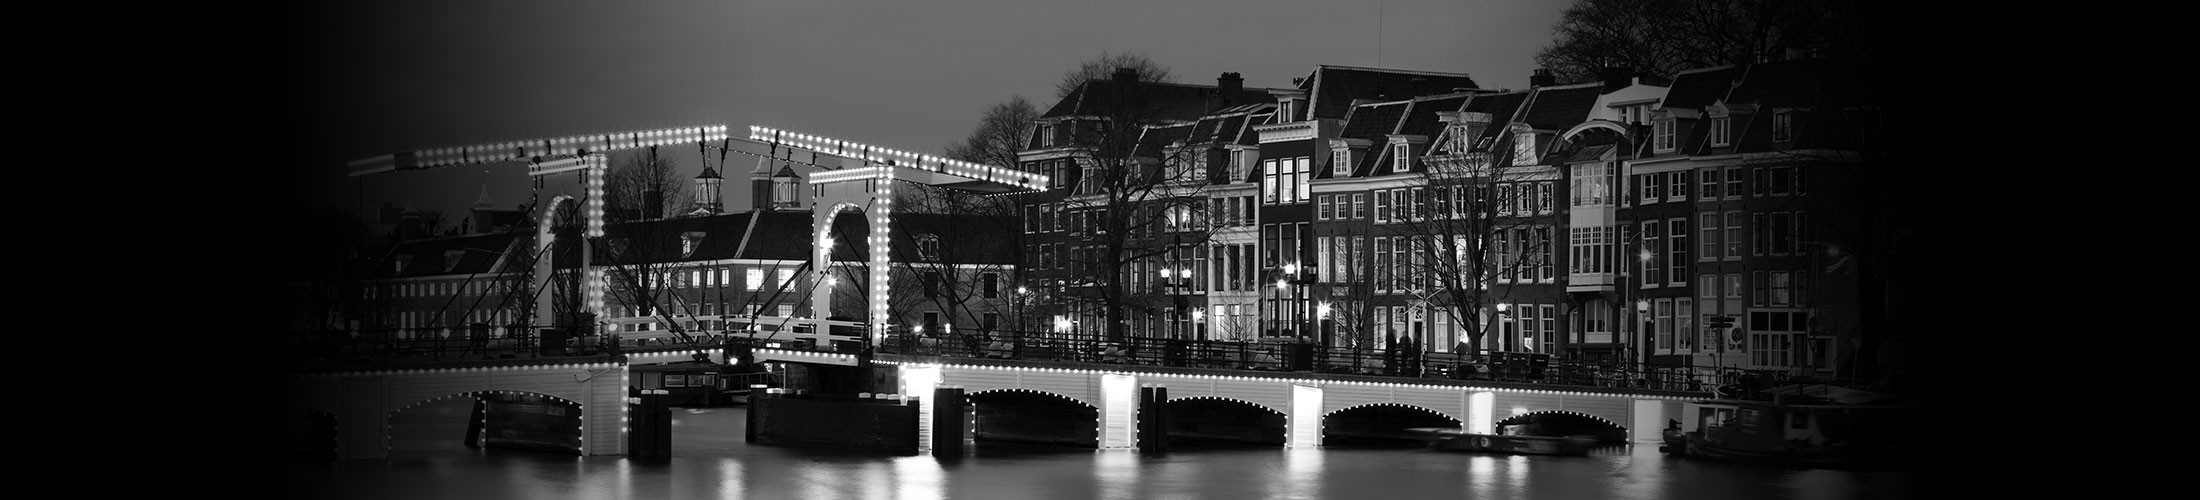 magere_brug